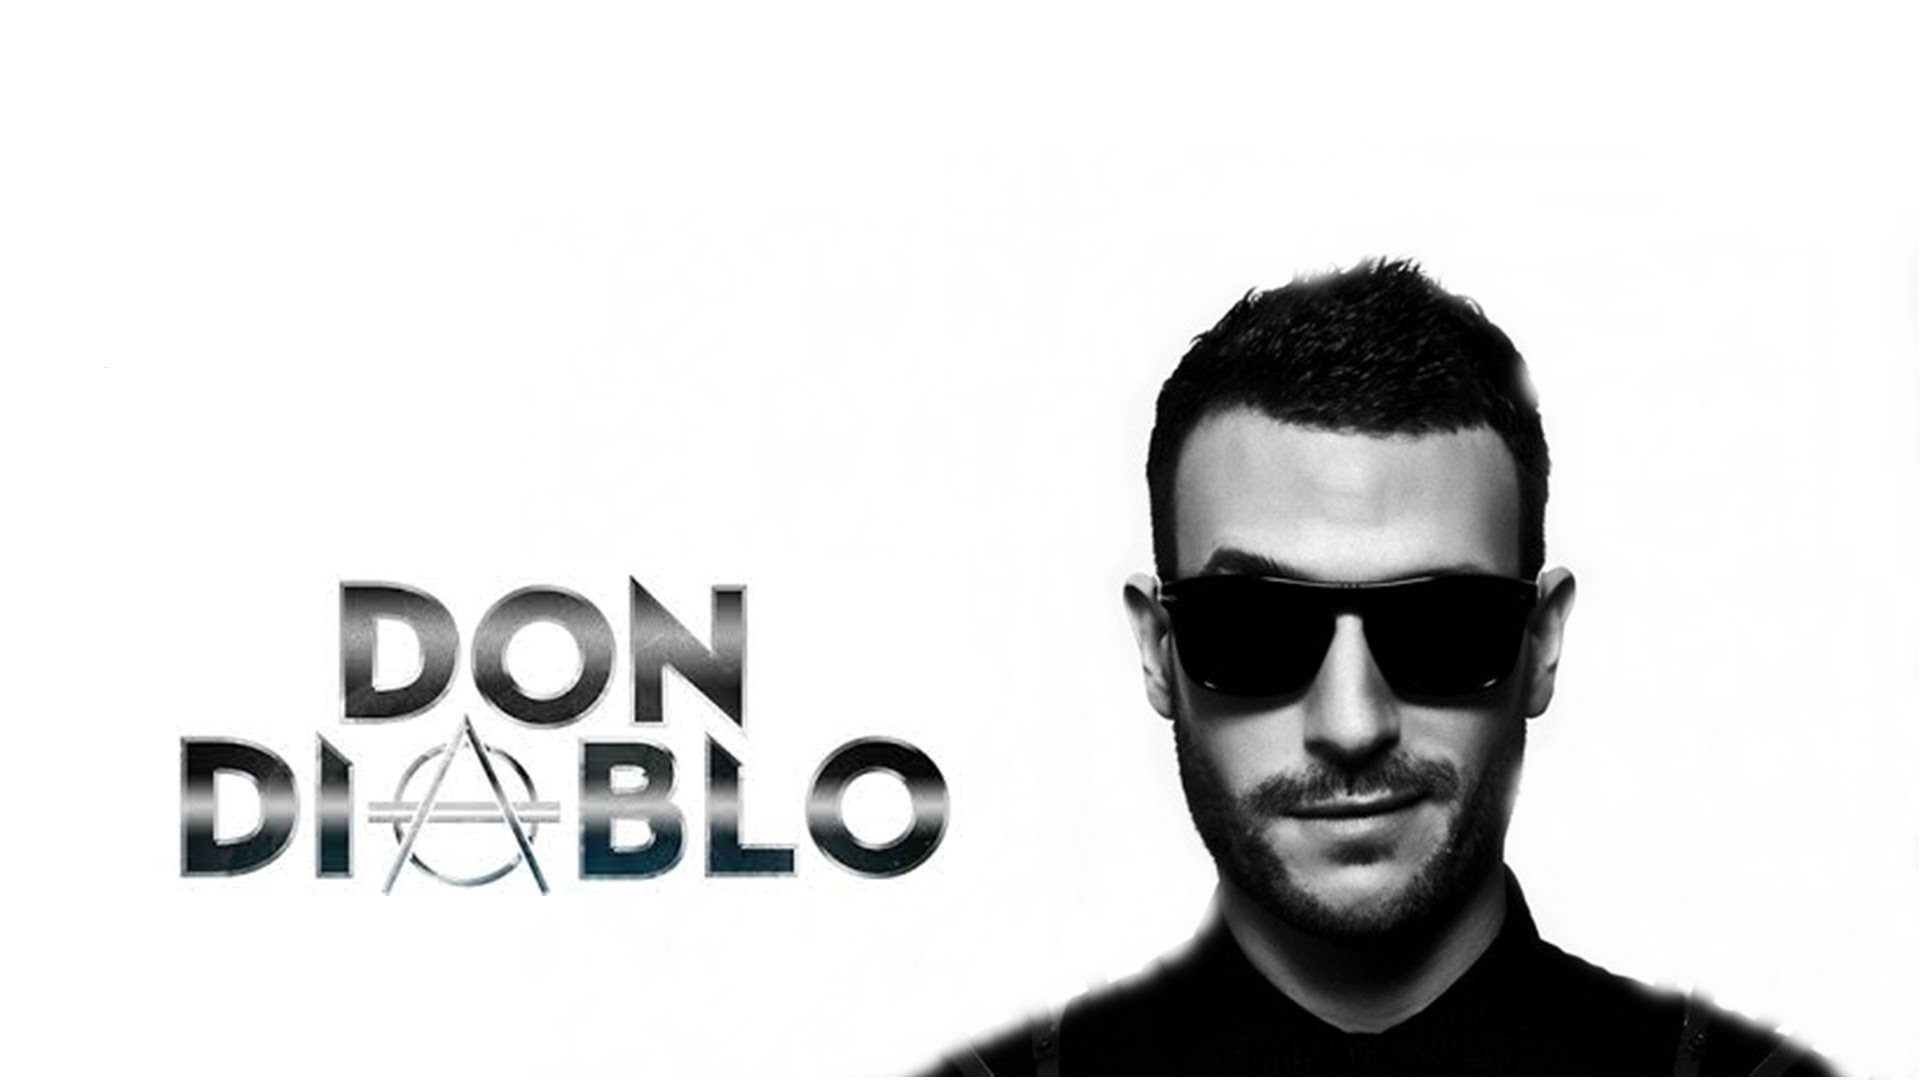 Don Diablo Hd